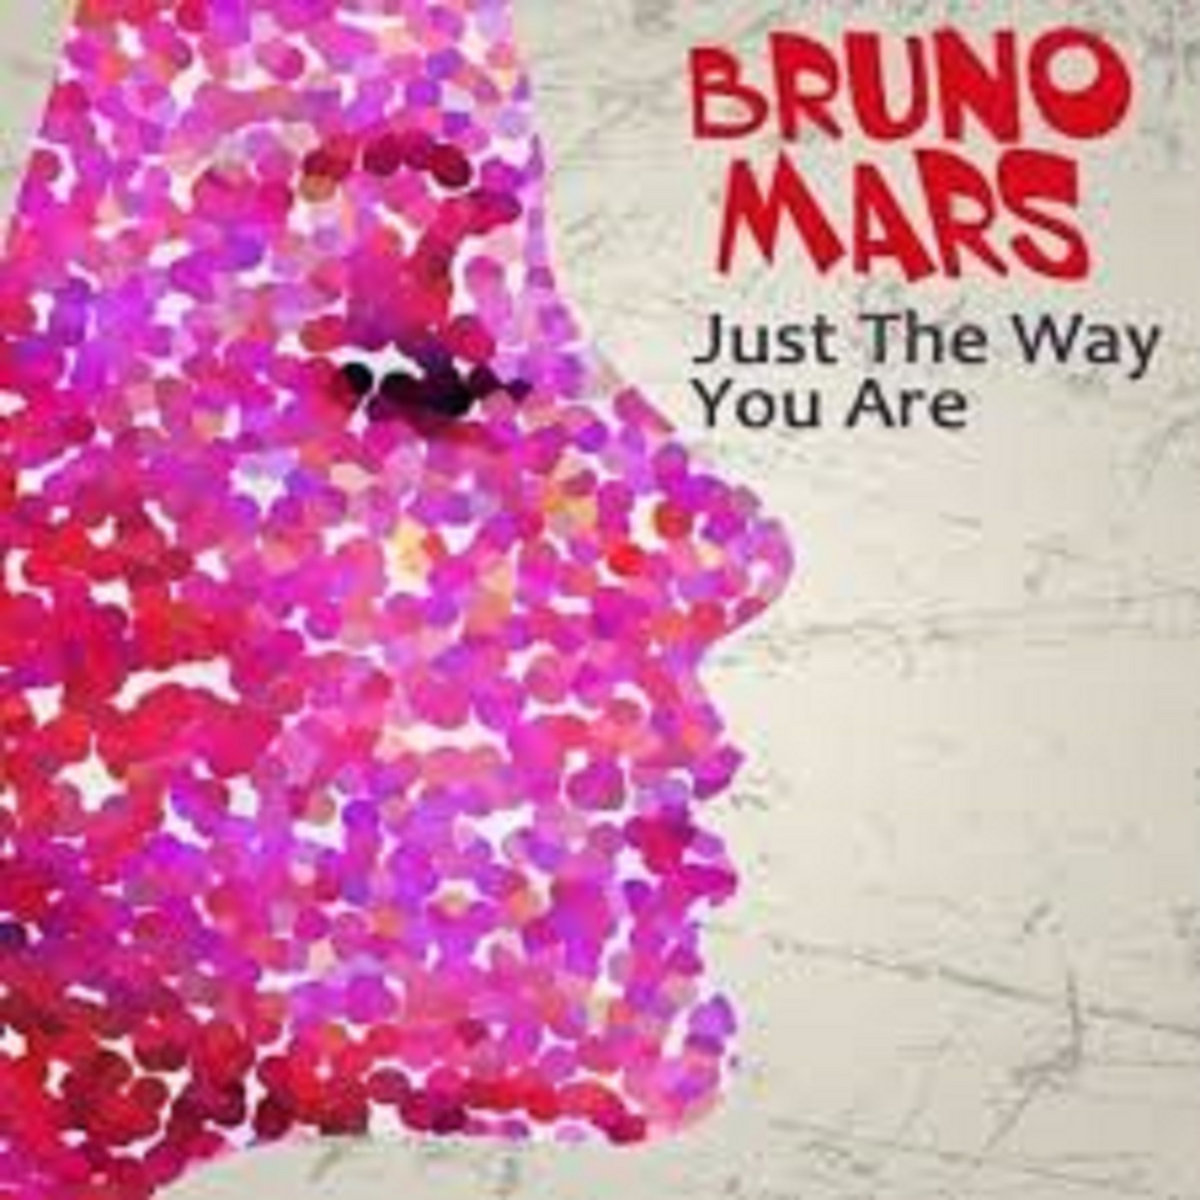 Bruno Mars Just The Way You Are Girl